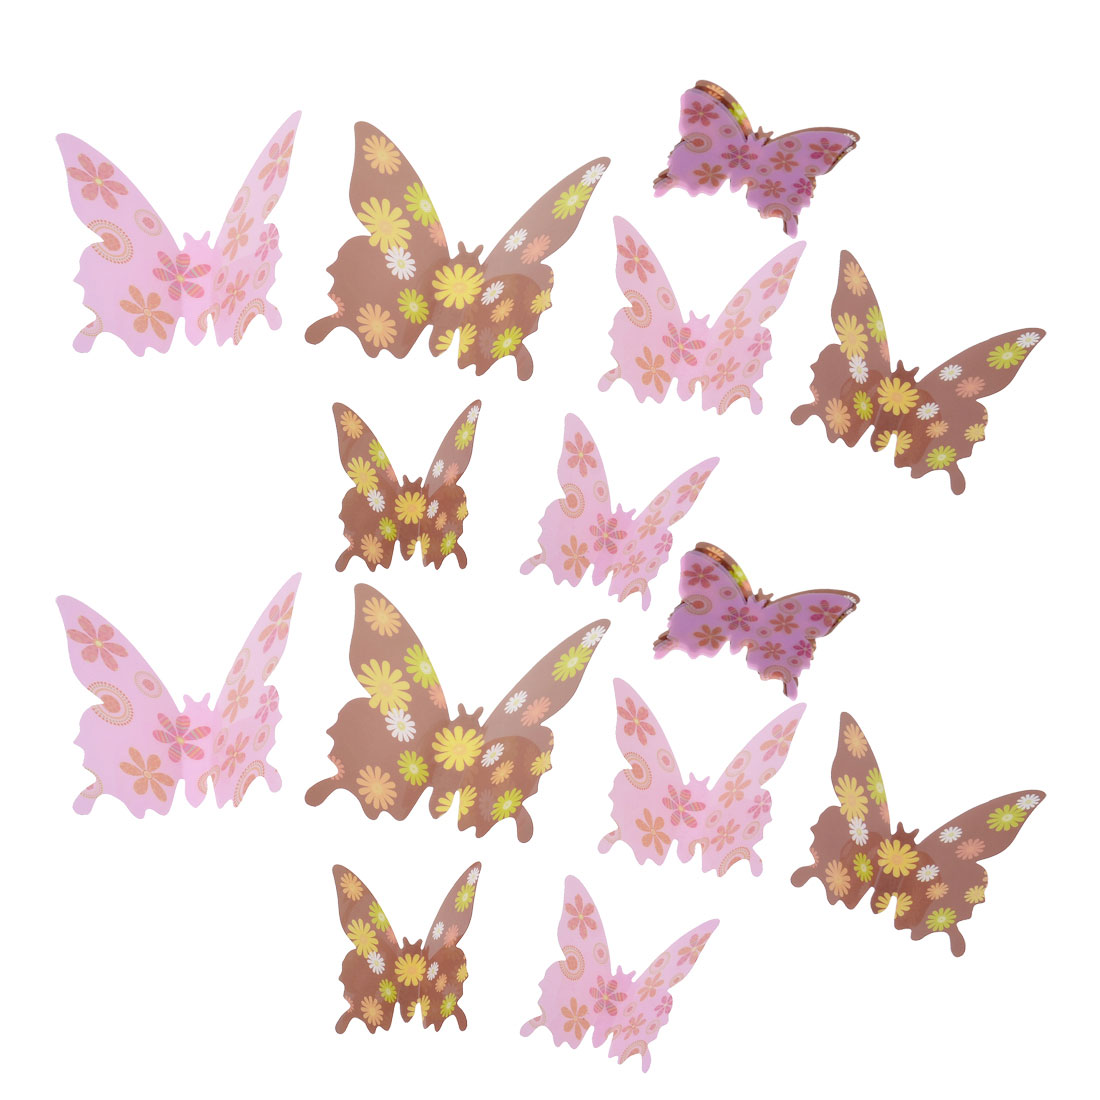 Room Art Decor 3D Floral Pattern Butterfly Shaped Wall Sticker Decal 24pcs